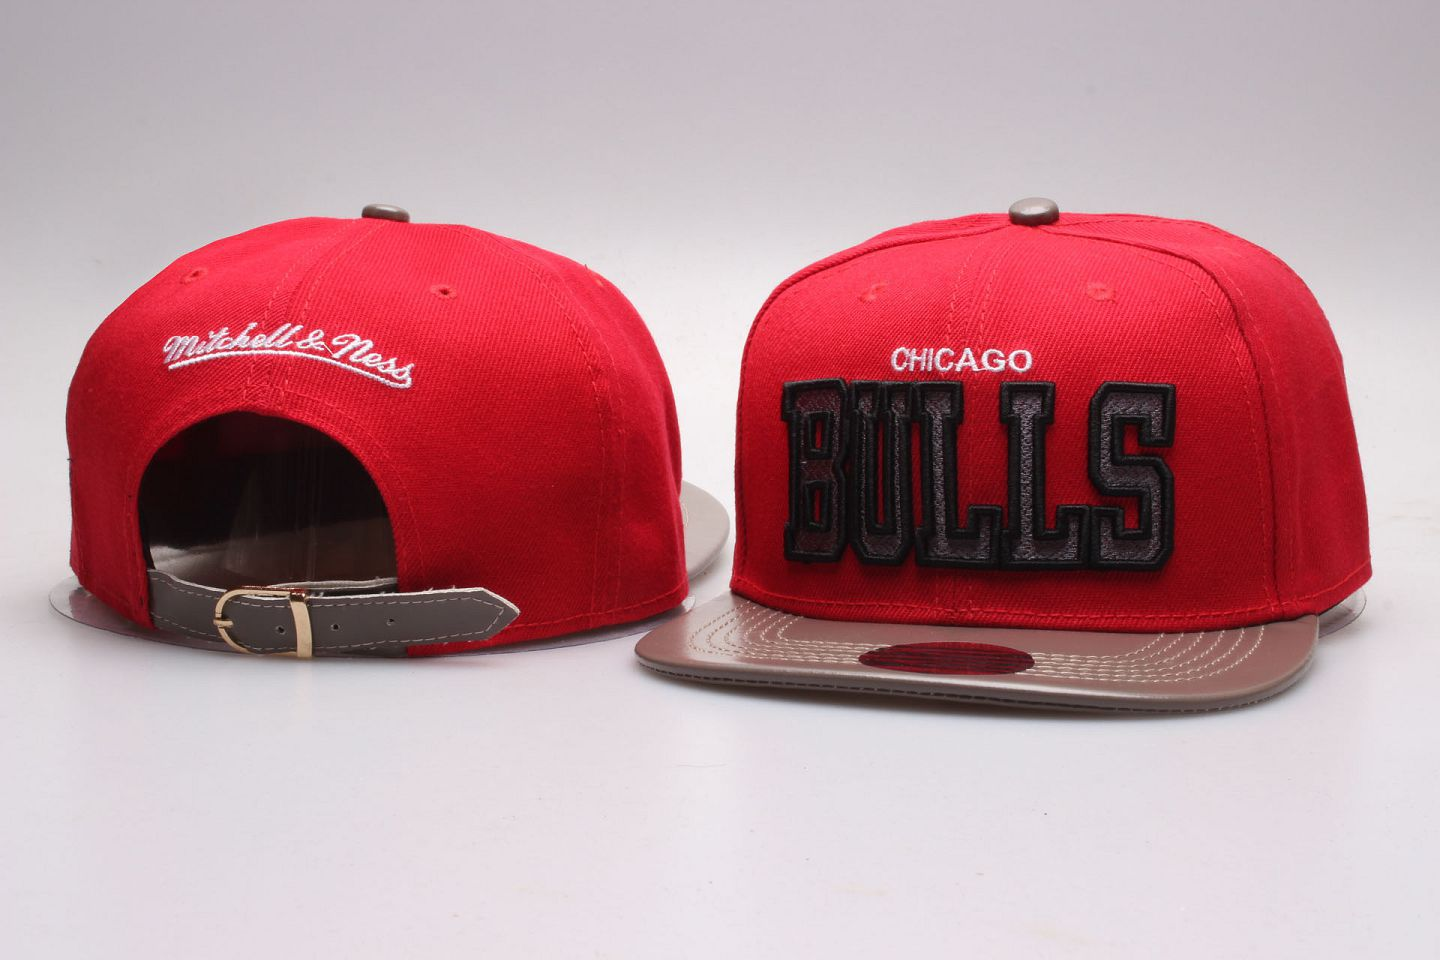 NBA Chicago Bulls Snapback hat 201811258